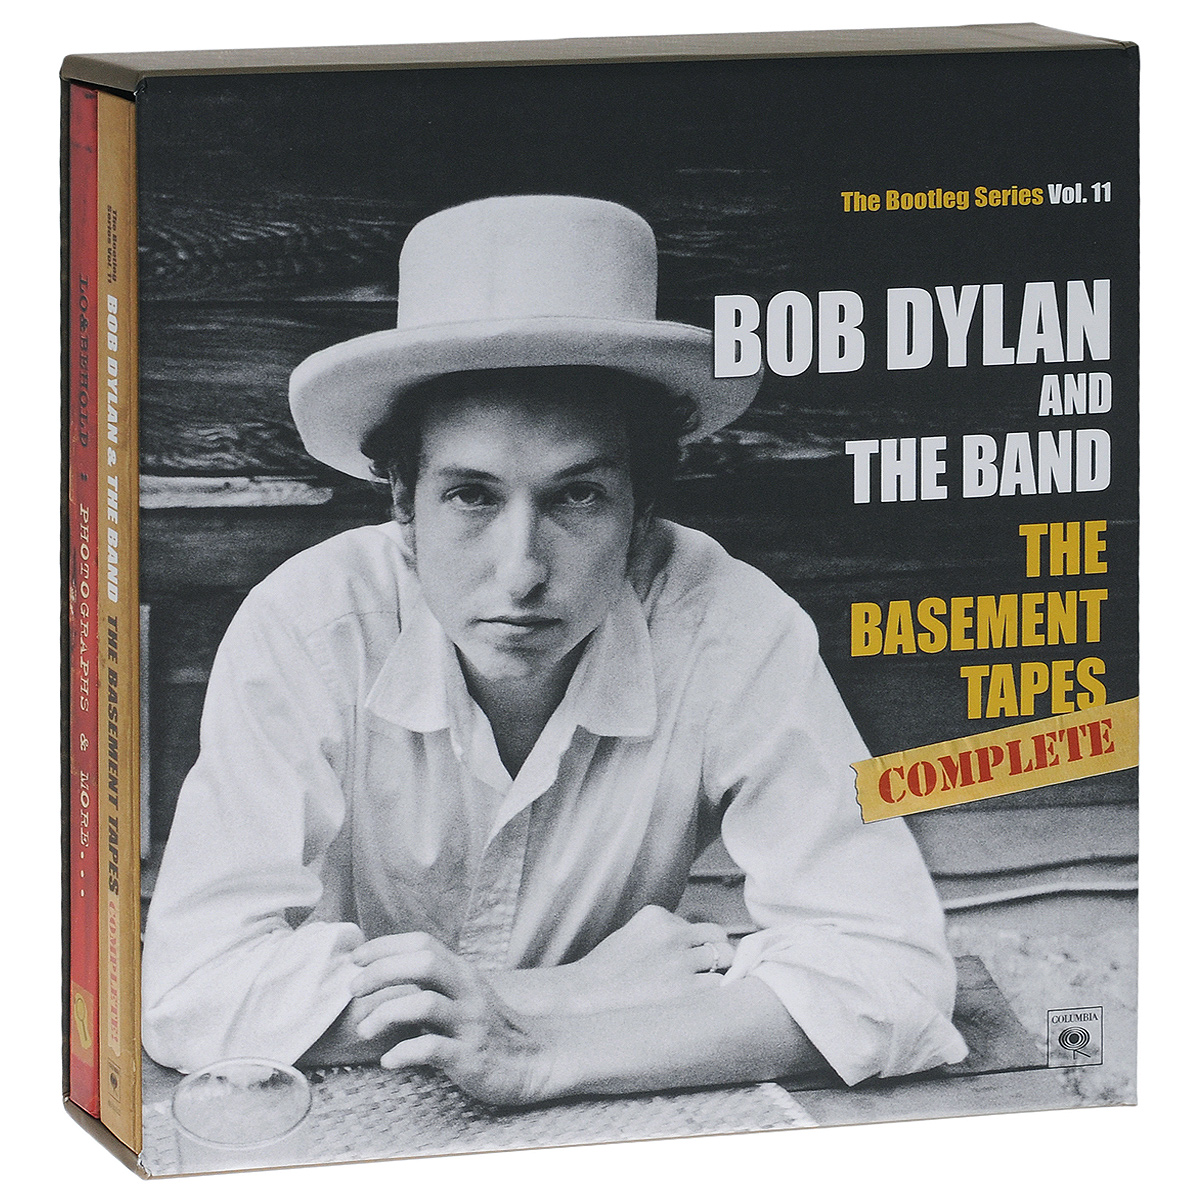 Фото - Bob Dylan And The Band Bob Dylan and The Band. The Bootleg Series Vol. 11: The Basement Tapes Complete. Limited Deluxe Edition (6 CD) cd led zeppelin ii deluxe edition